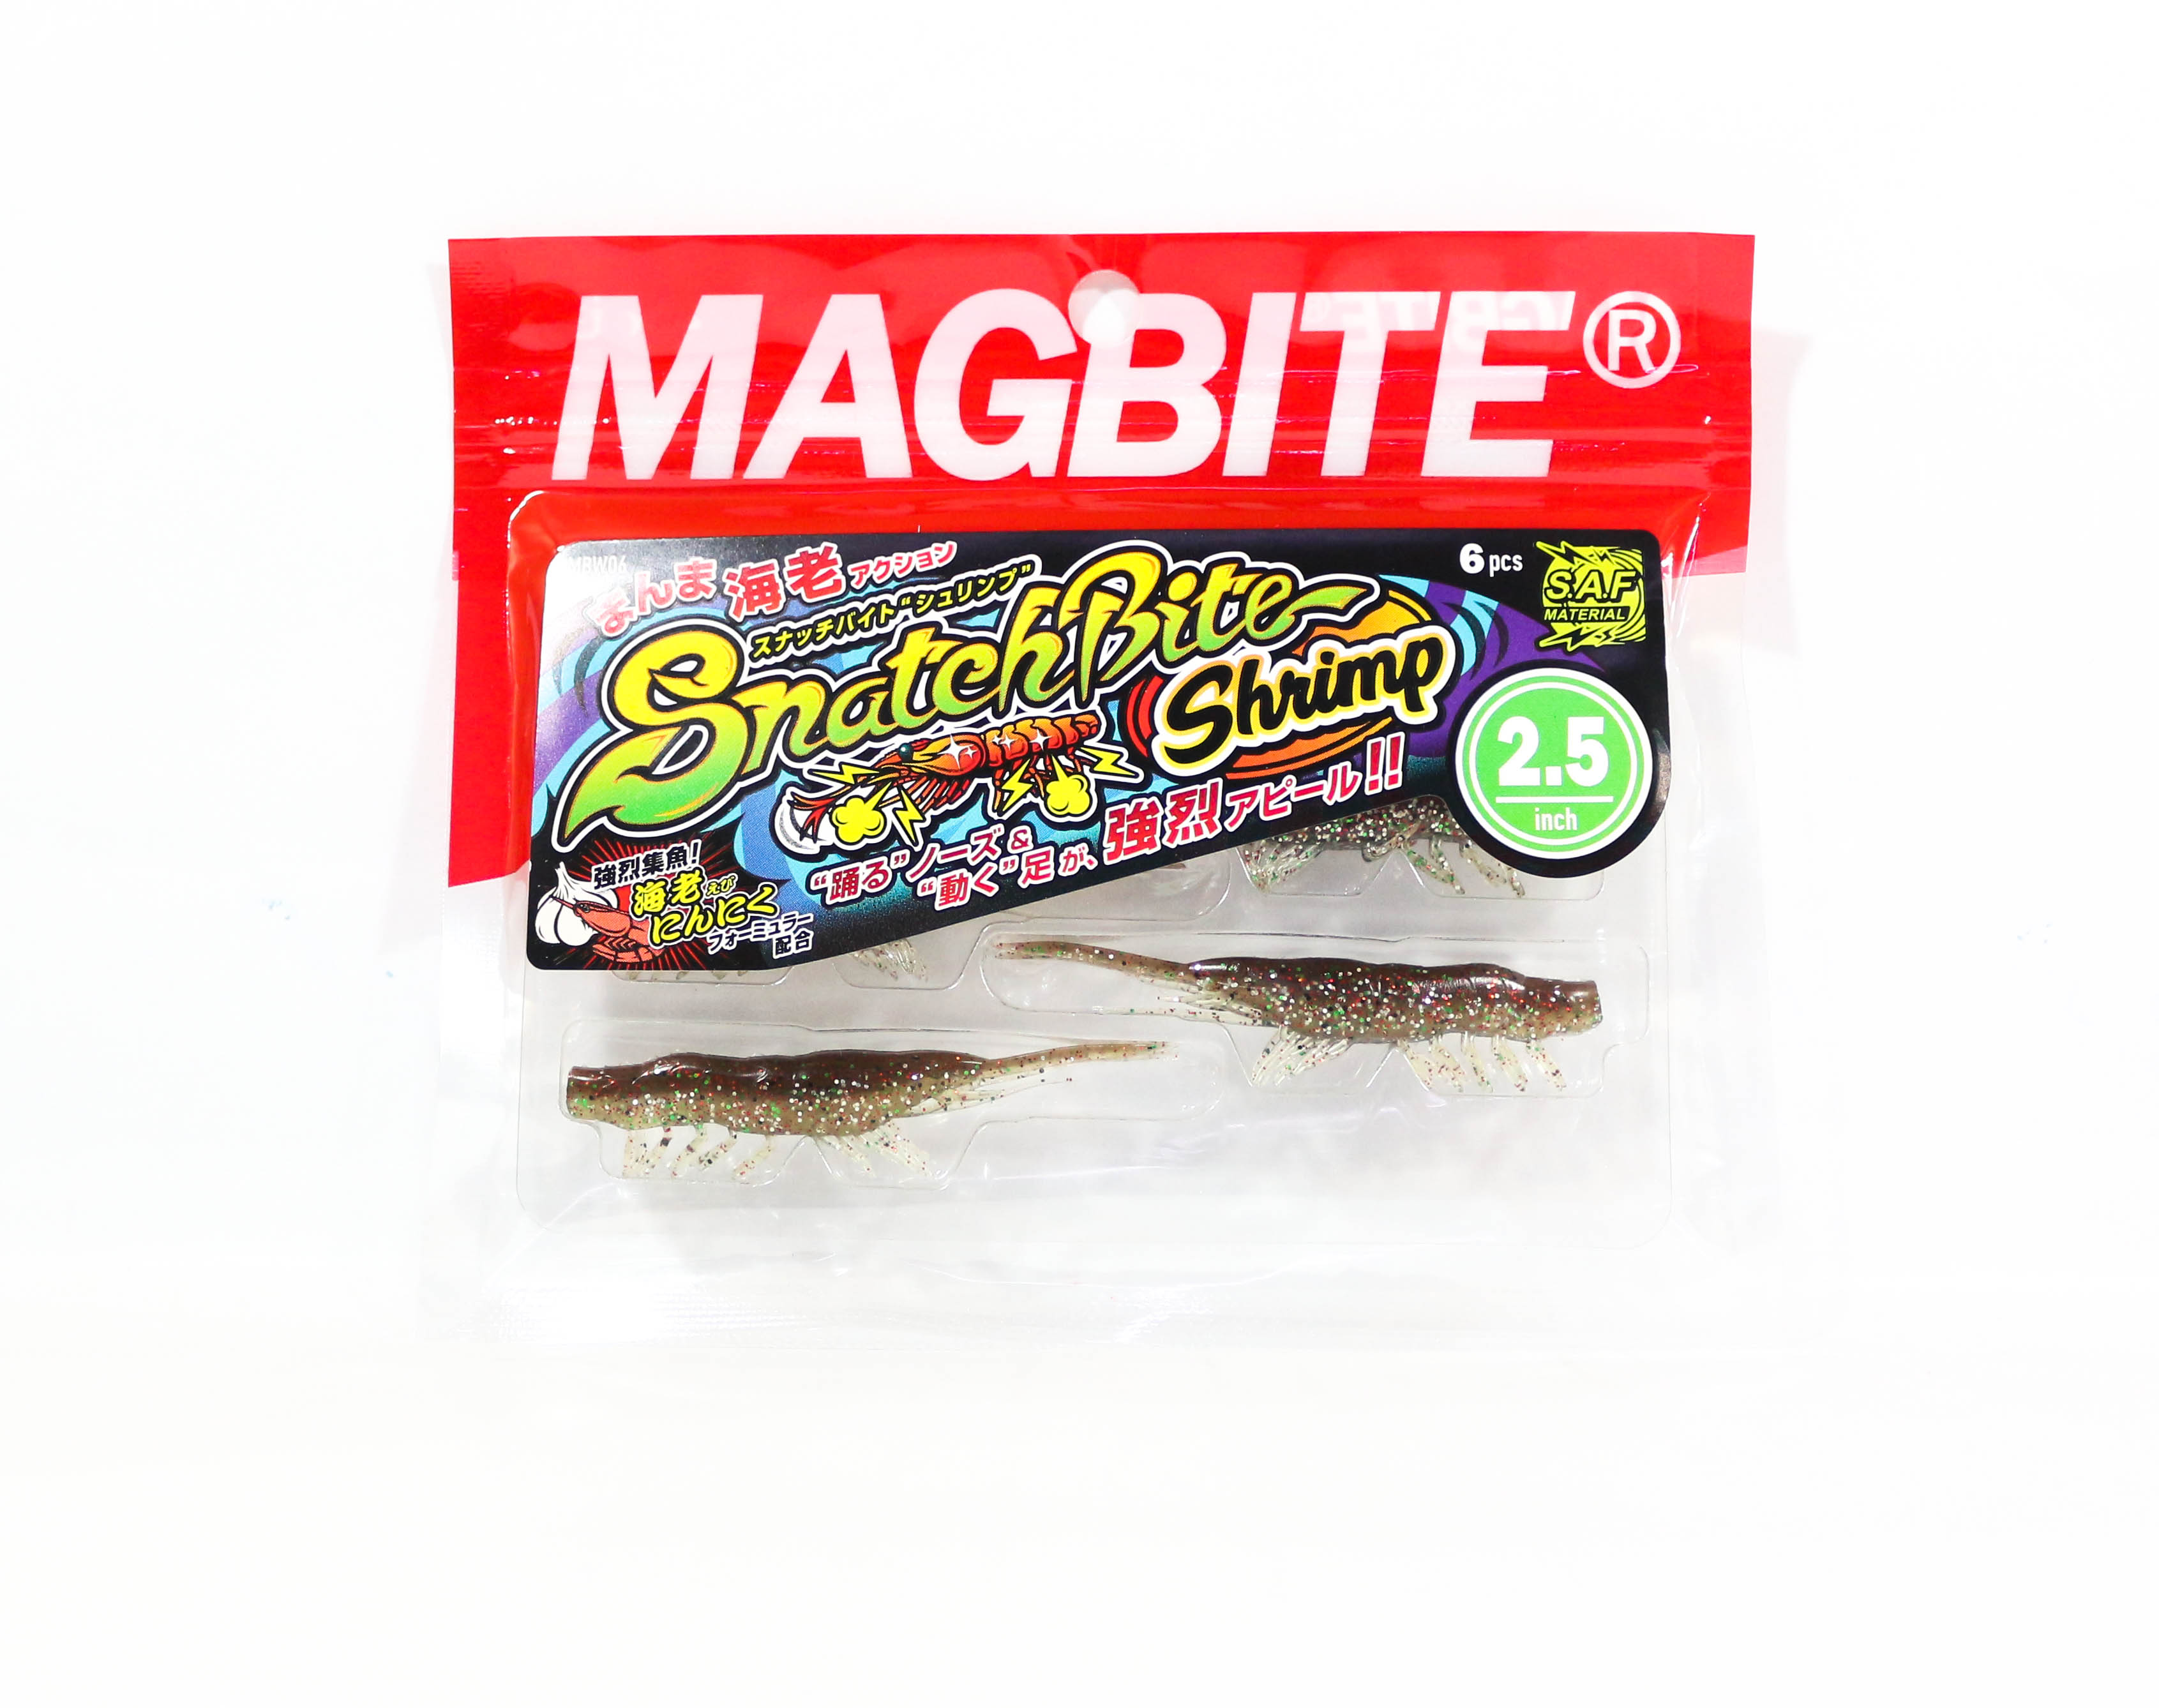 Harimitsu Mag Bite Snatch Shrimp 2.5 Inch 6 per pack 06 (6546)